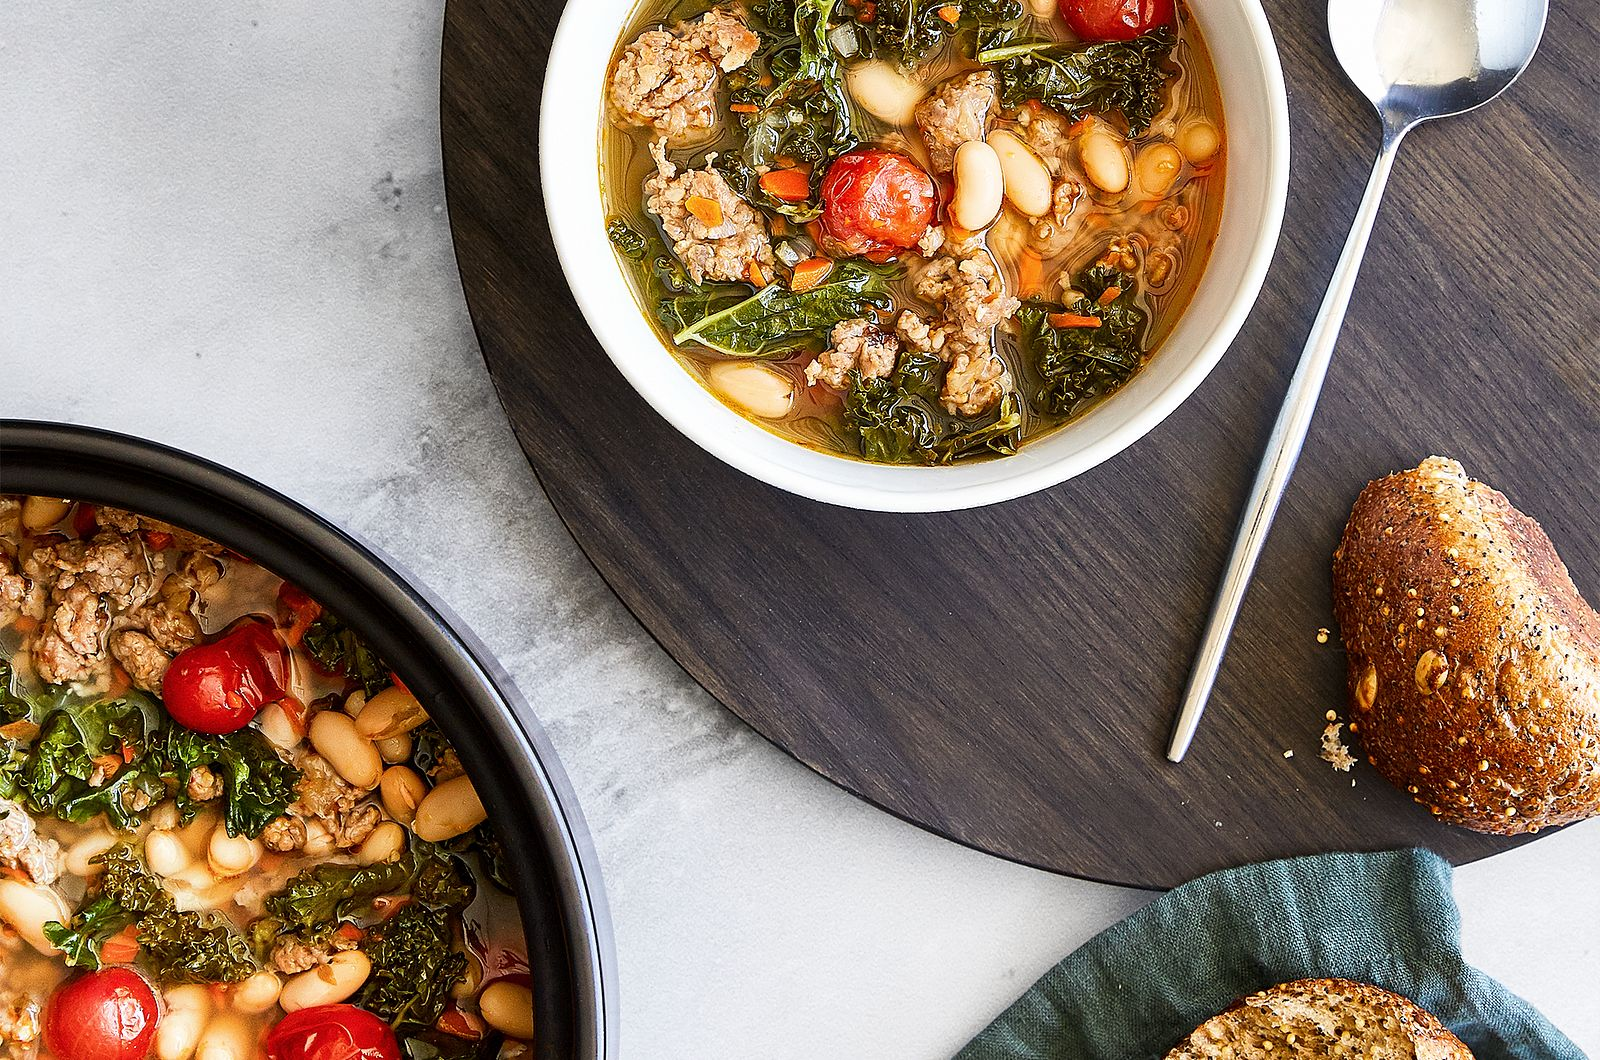 7 Easy One-Pot Meals on a Budget